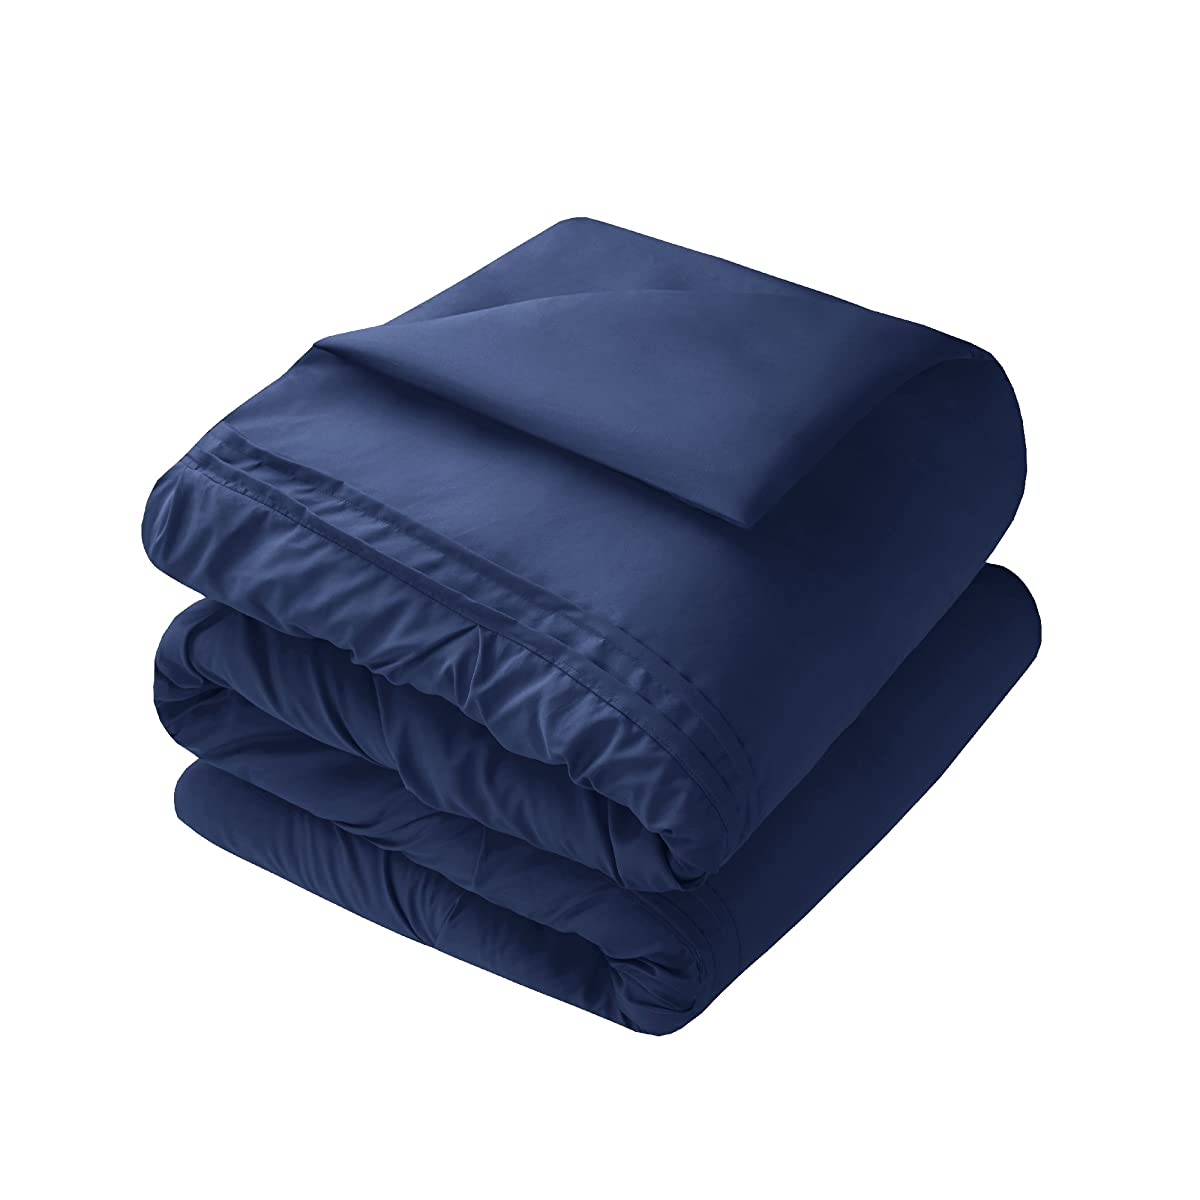 Comfort Spaces – Cavoy Comforter Set - 5 Piece – Tufted Pattern – Navy – Full/Queen size, includes 1 Comforter, 2 Shams, 1 Decorative Pillow, 1 Bed Skirt